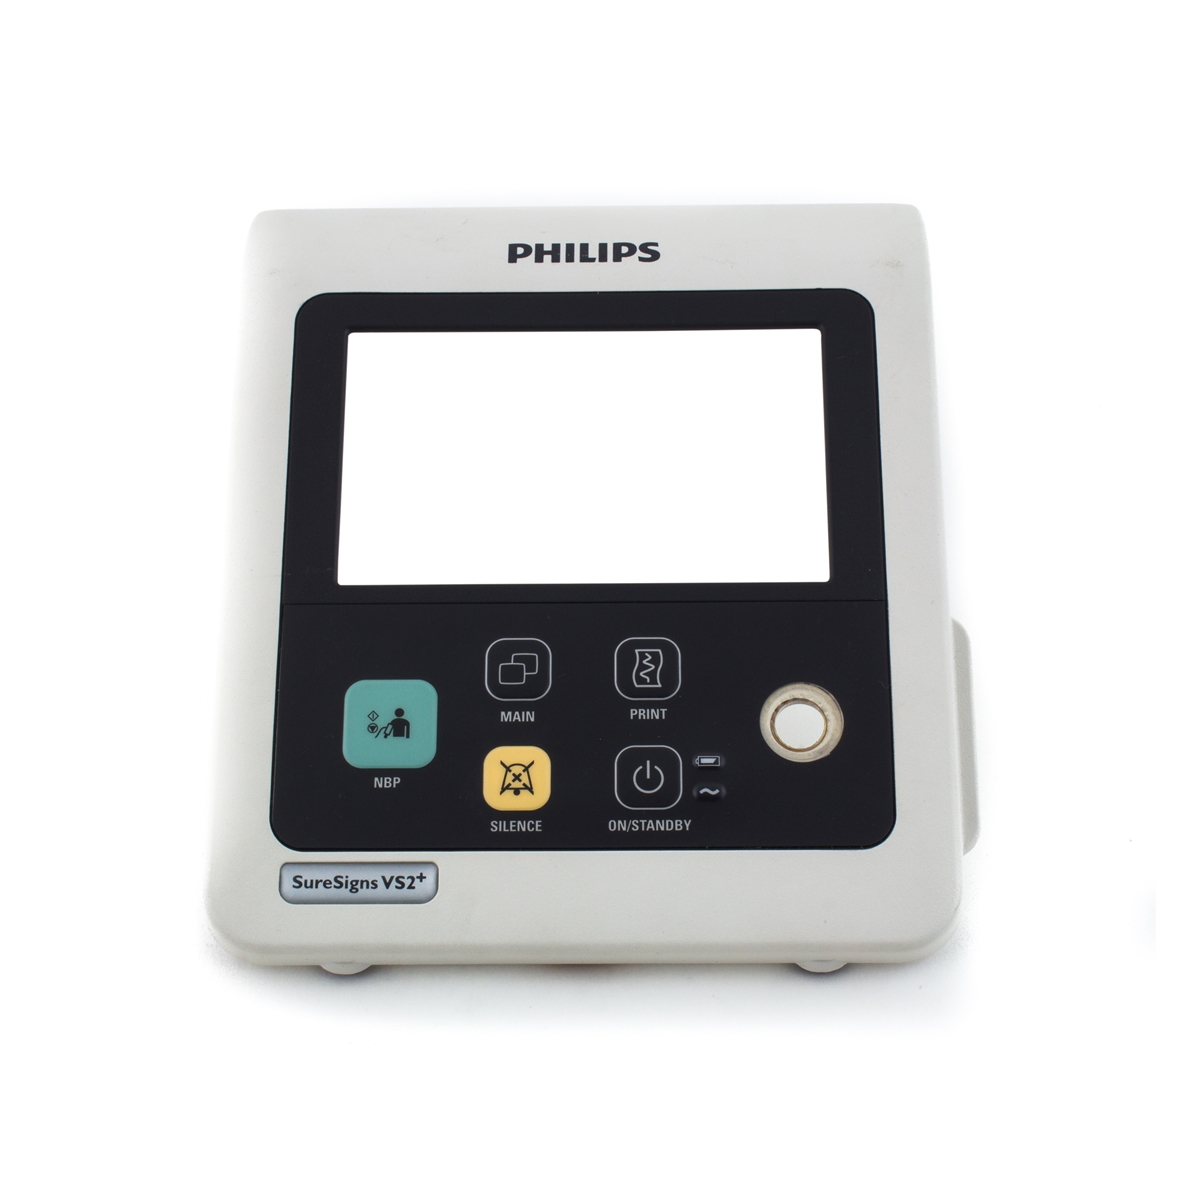 Philips SureSigns VS2+ Patient Monitor Front Screen Bezel Buttons & Overlay